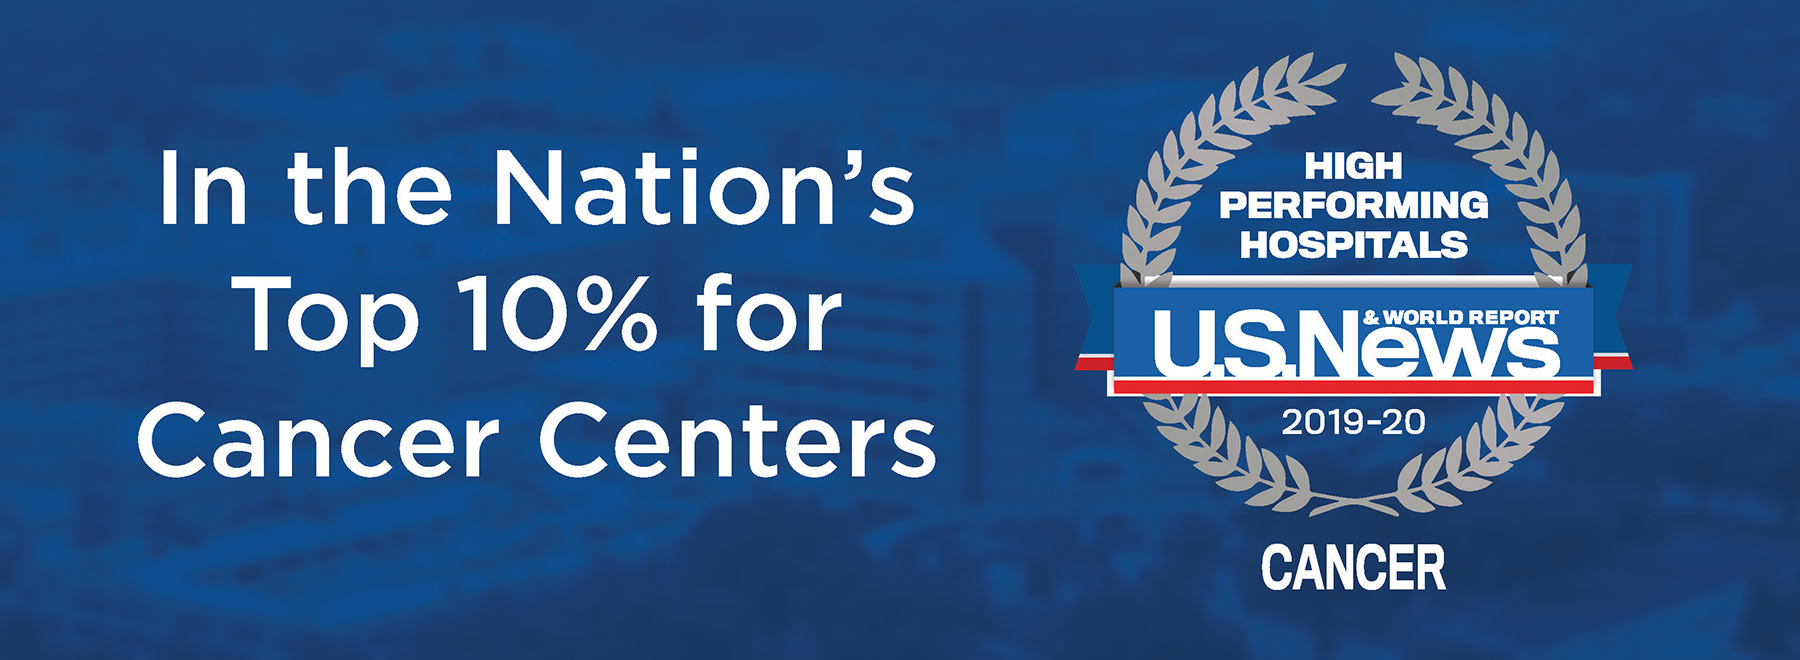 In the Nation's Top 10% for Cancer Centers